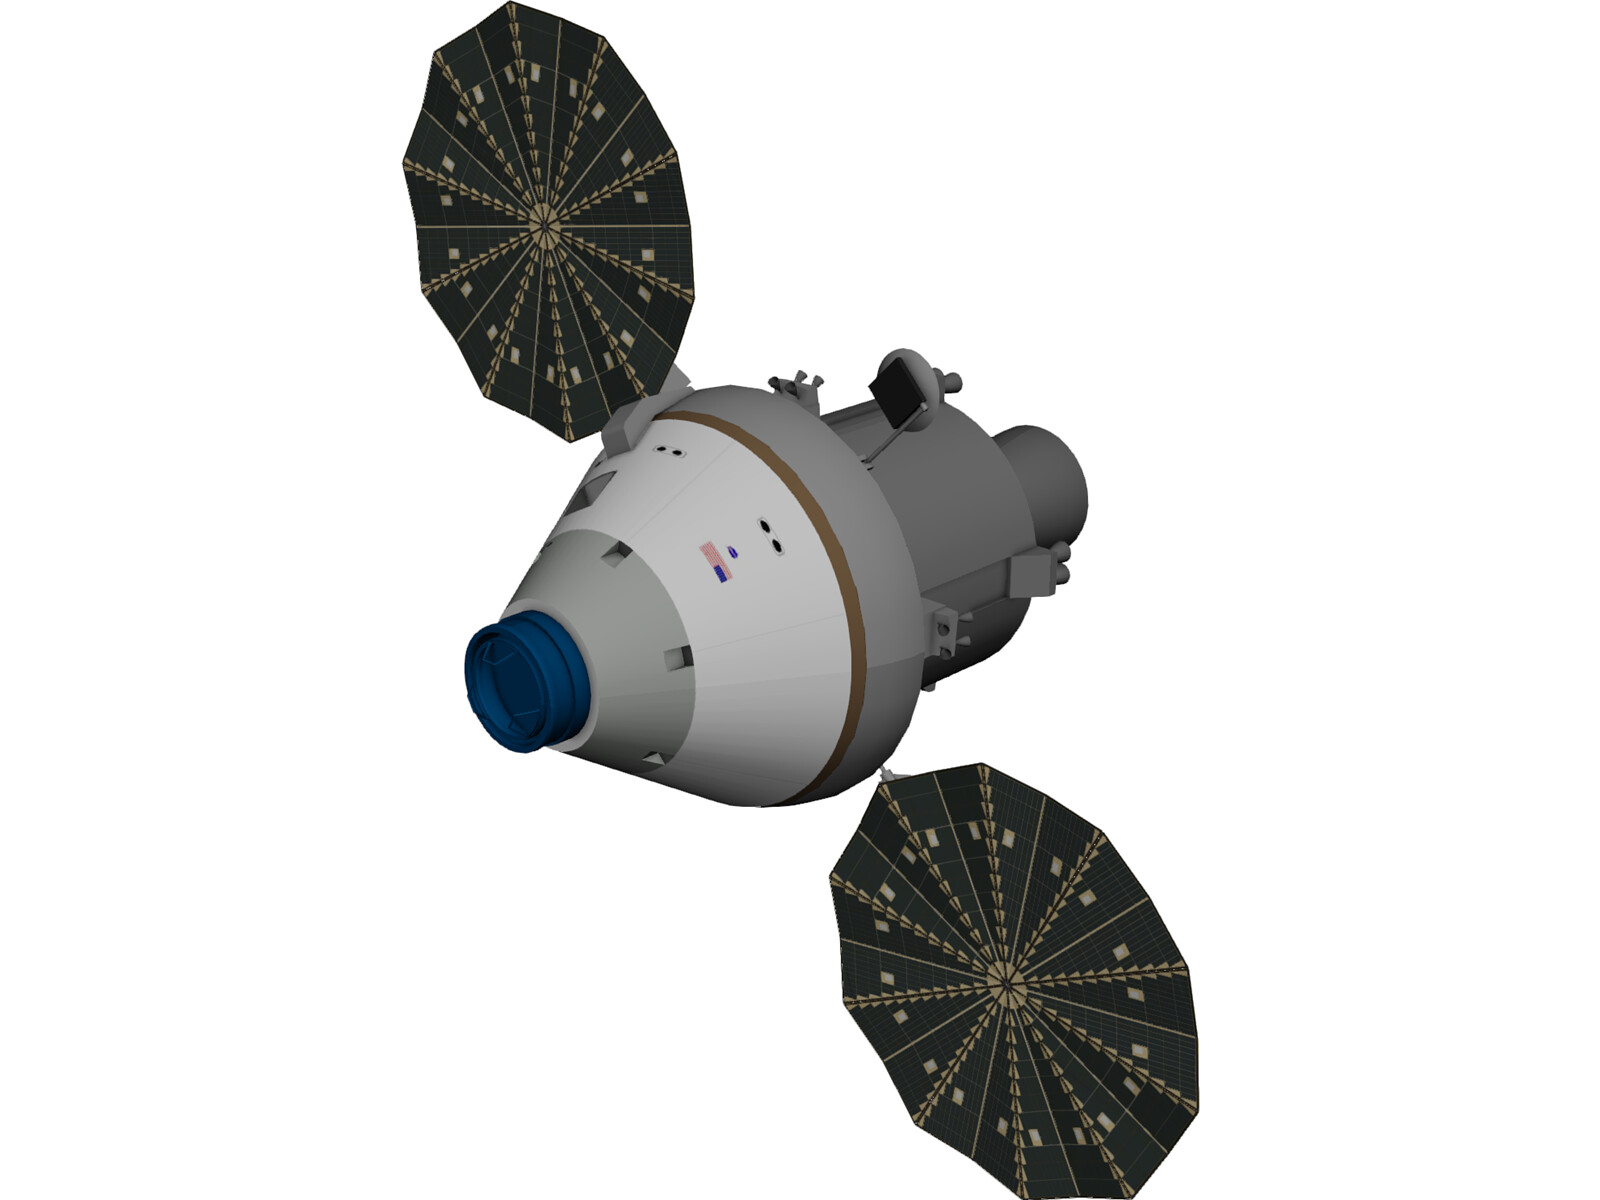 Orion Spacecraft Model (page 2) - Pics about space